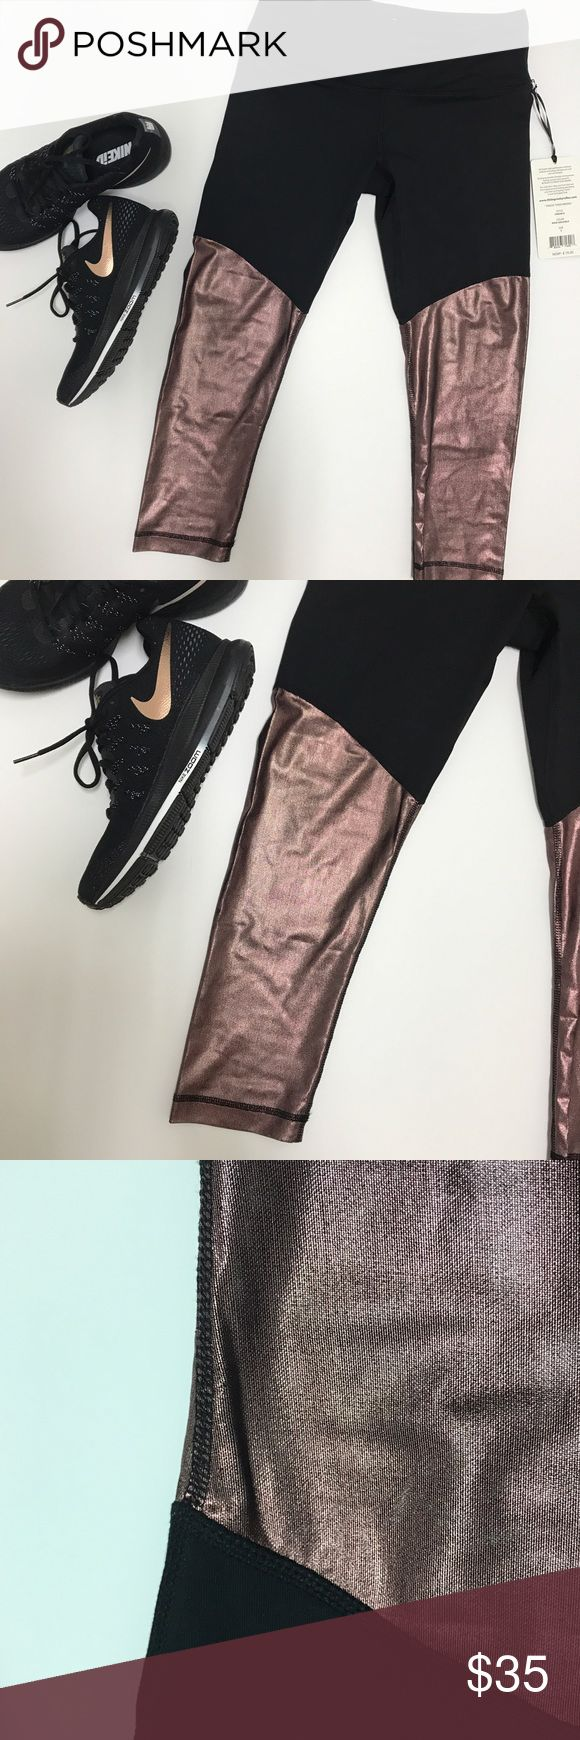 {90 Degree} Metallic Rose Gold Mesh Crop NWT. Black & rose gold gym/running/just-generally-looking-badass crop. 90 Degree by Reflex. Size small. { Super Fast Shipping / 15% Off Bundles / Reasonable Offers Are Welcome, But Lowballing Makes Me Sad } 90 Degree by Reflex Pants Ankle & Cropped